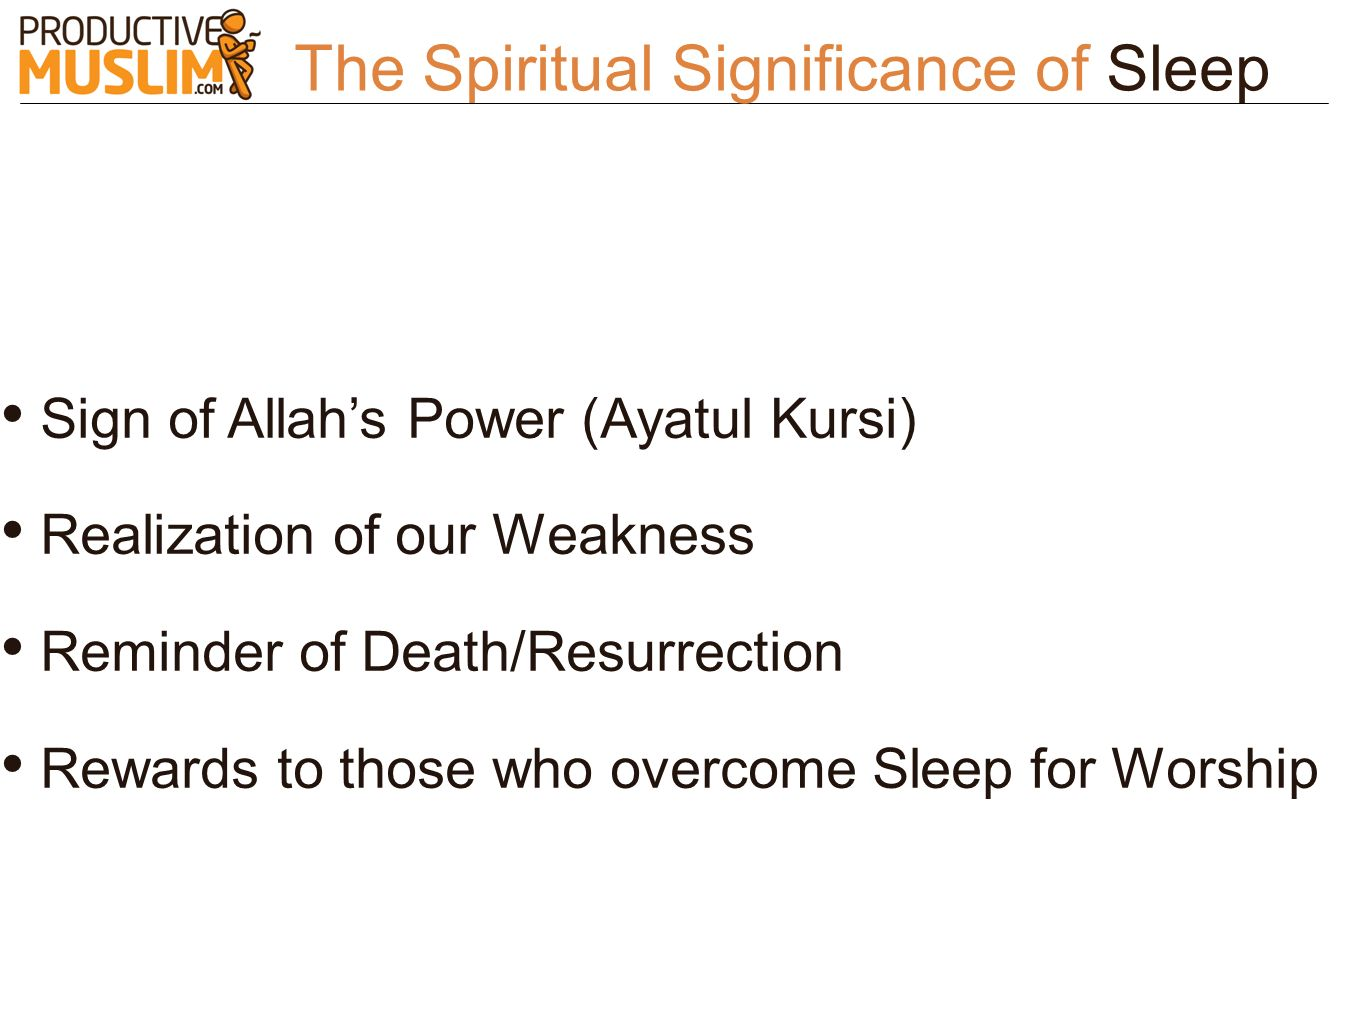 The Spiritual Significance of Sleep